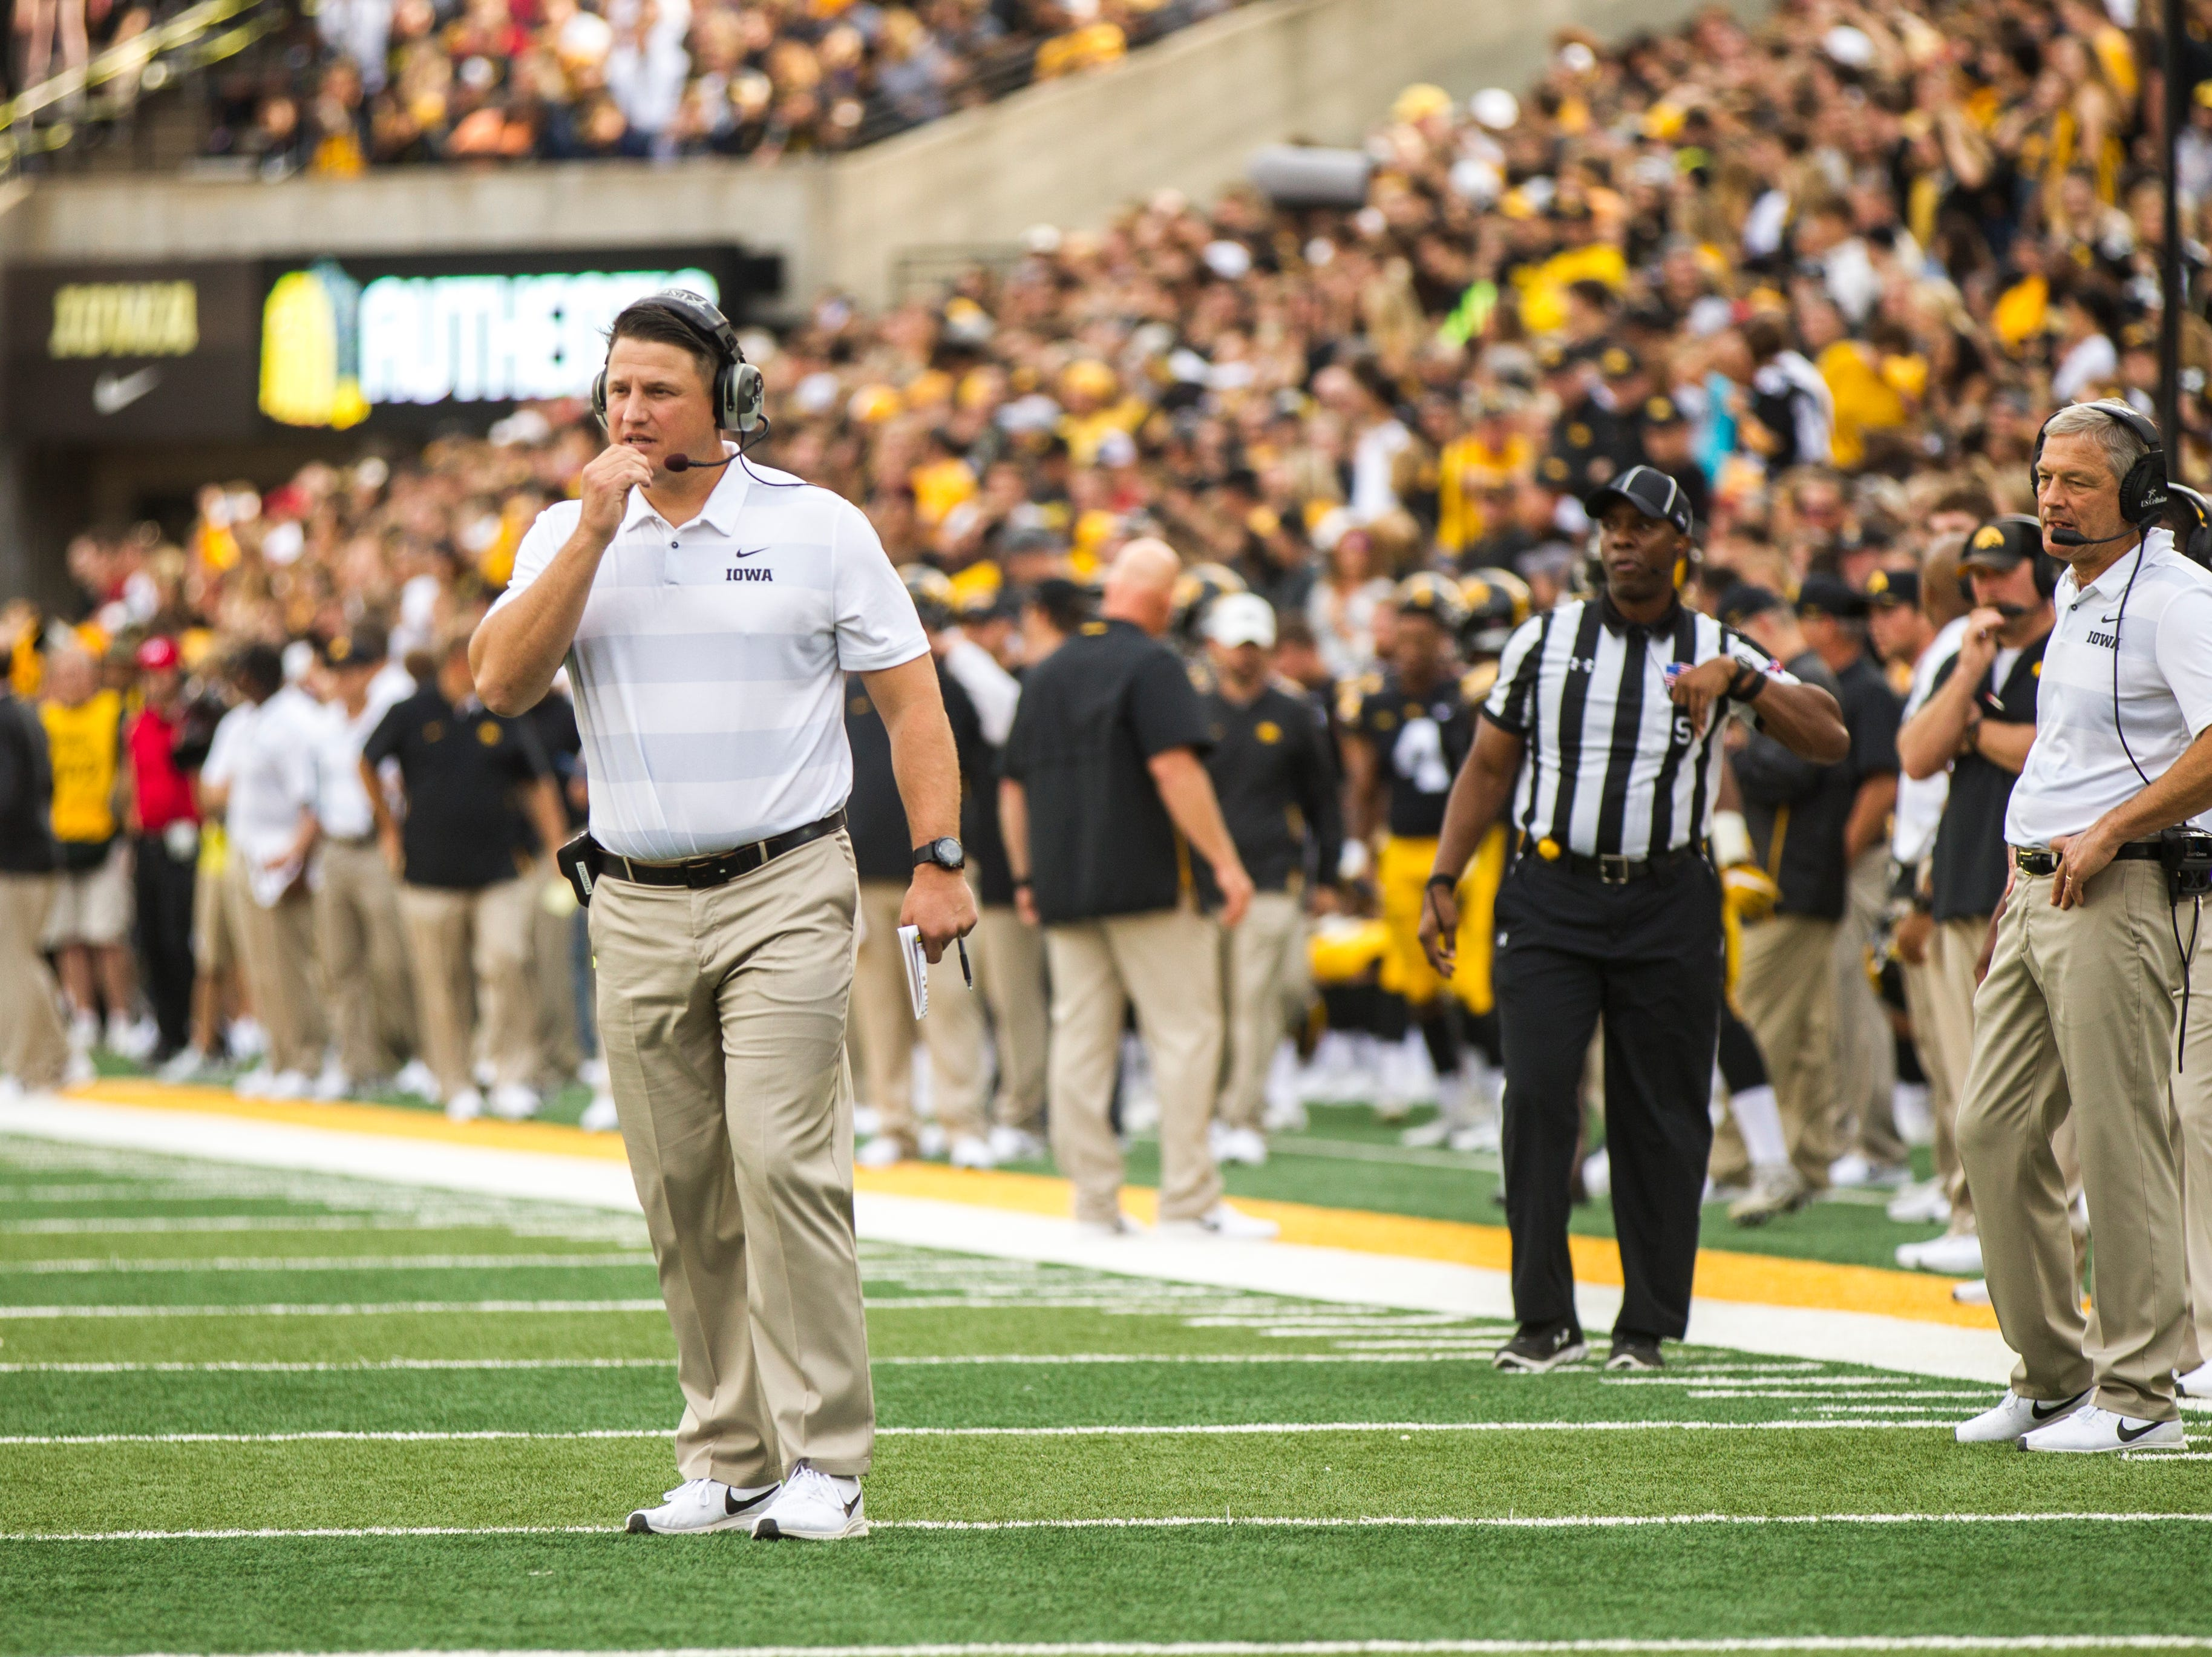 Iowa offensive coordinator Brian Ferentz (left) talks into his headset while Iowa head coach Kirk Ferentz (right) stands on the sideline during the Cy-Hawk NCAA football game on Saturday, Sept. 8, 2018, at Kinnick Stadium in Iowa City.